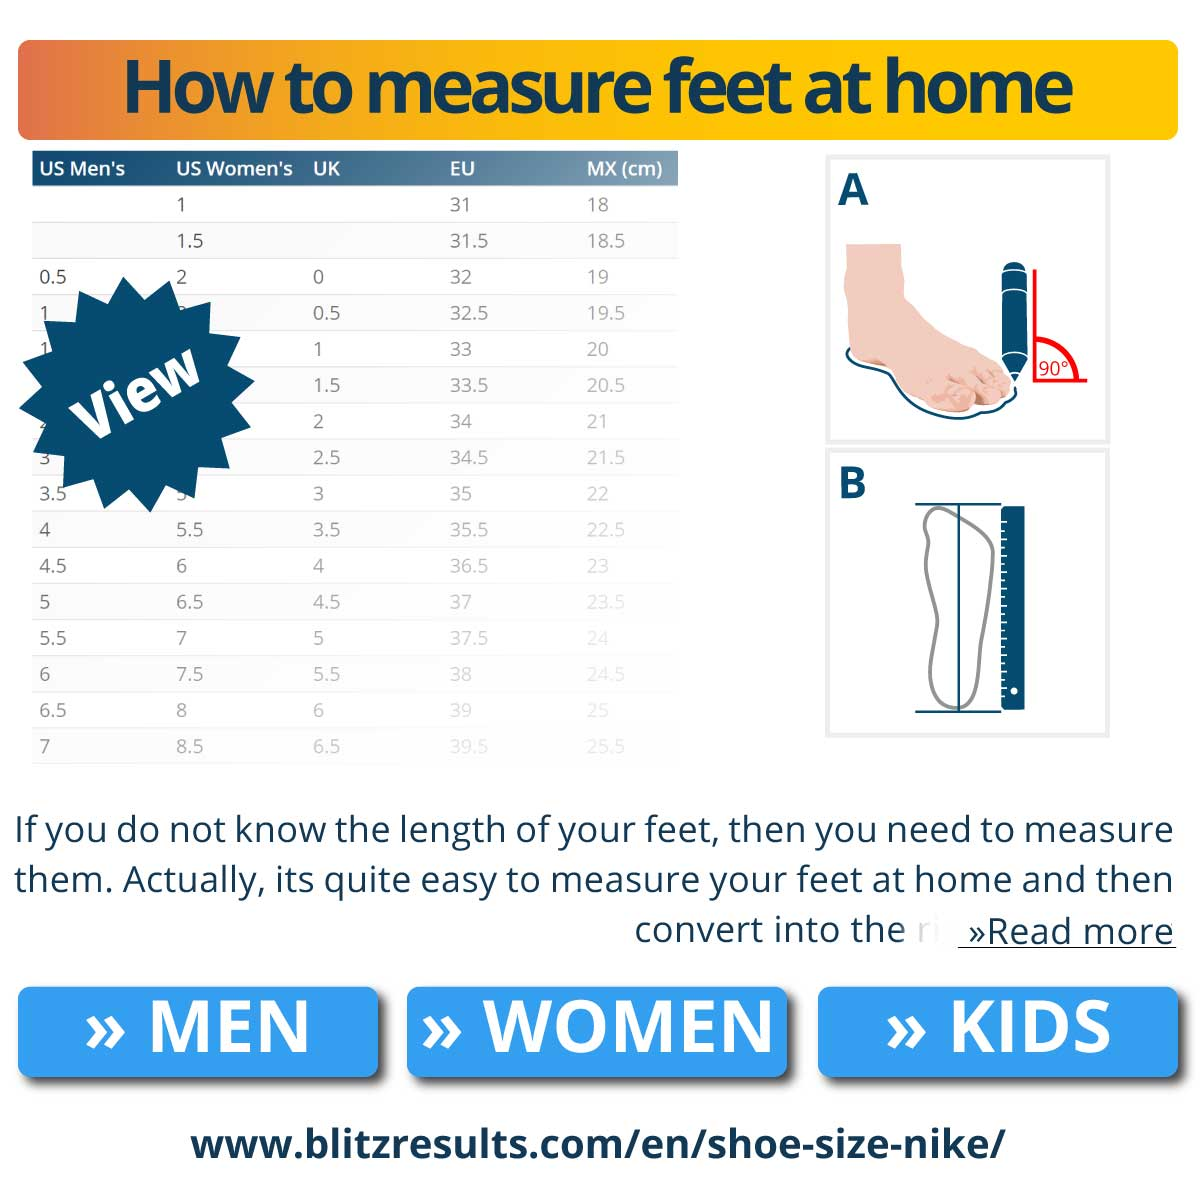 How to measure feet at home